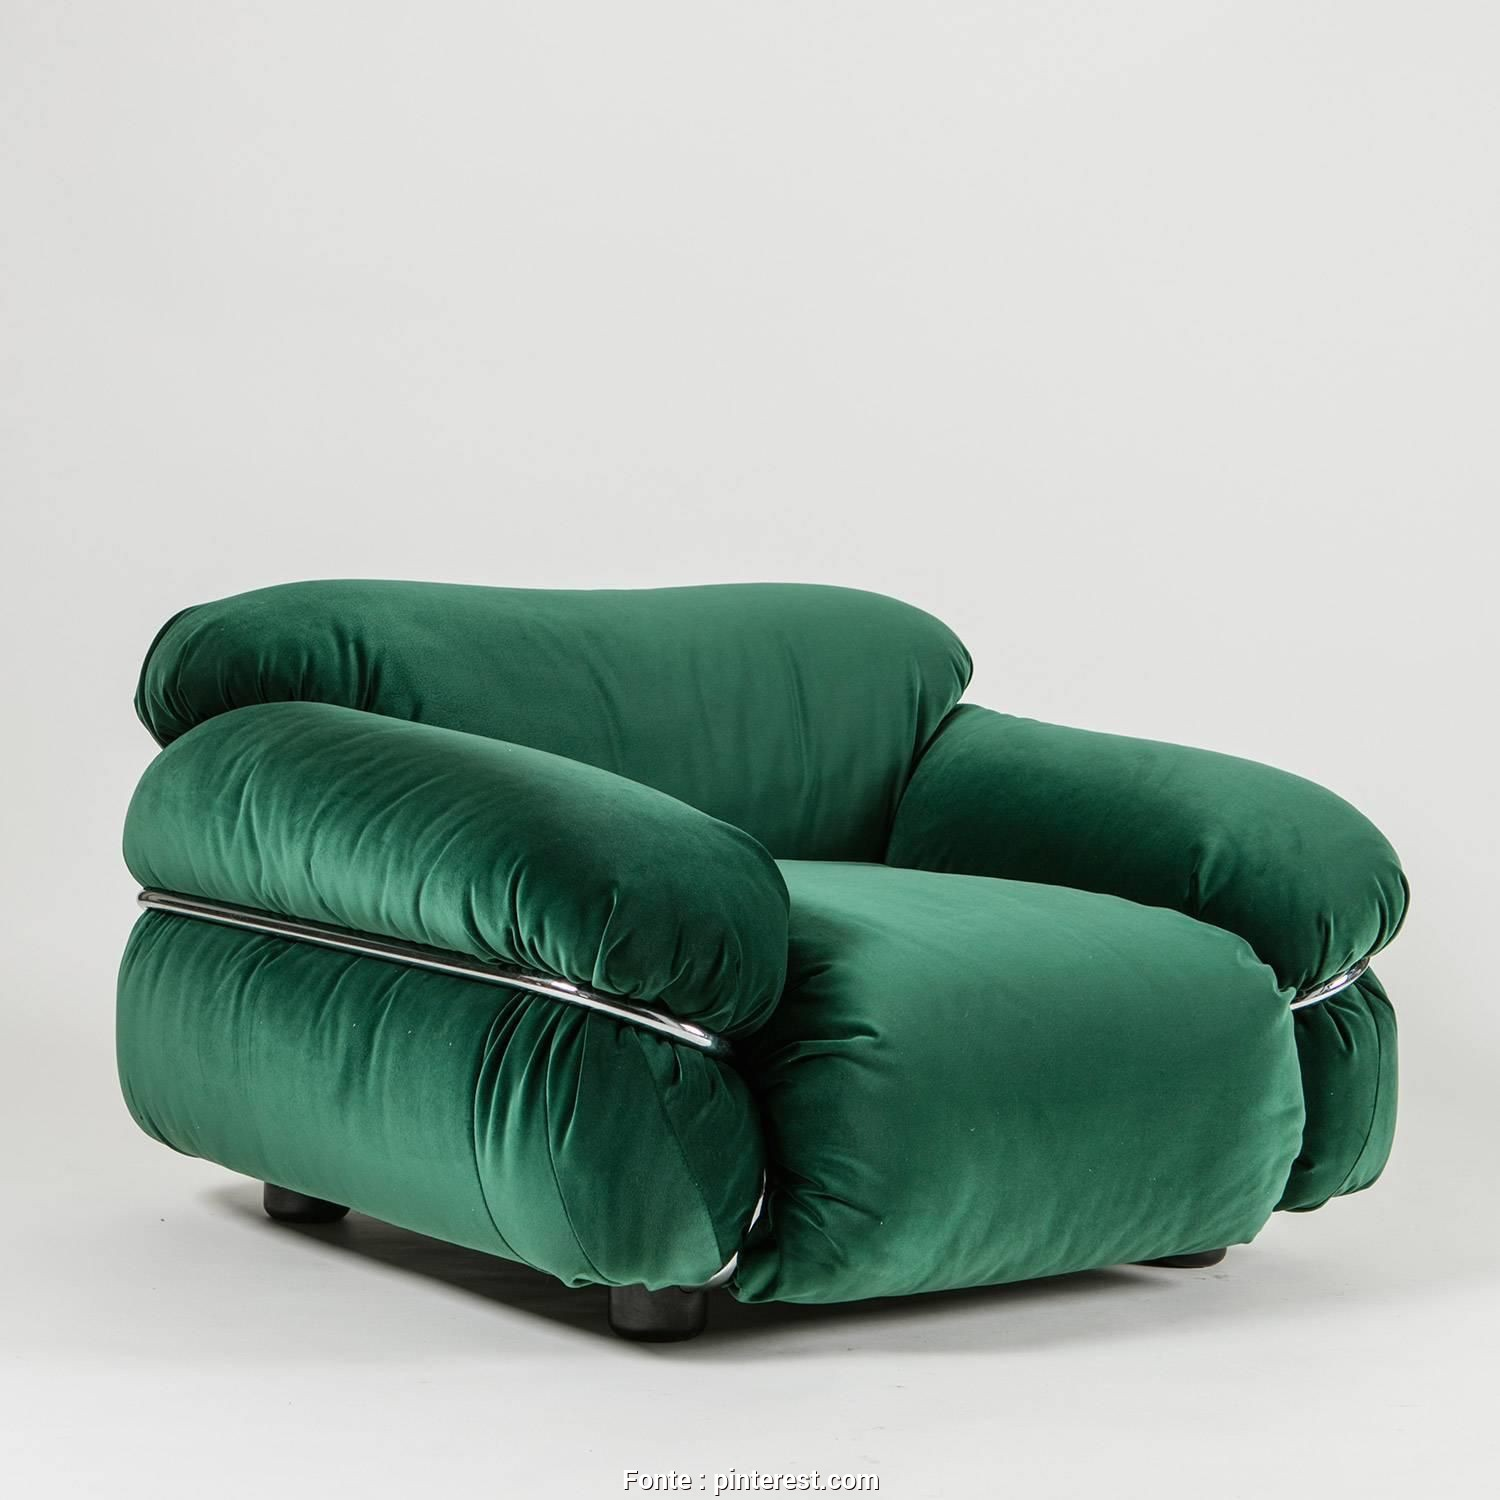 "Divano Sesann Cassina, Bella Sesann"" Armchair By Gianfranco Frattini, Cassina, Furniture"